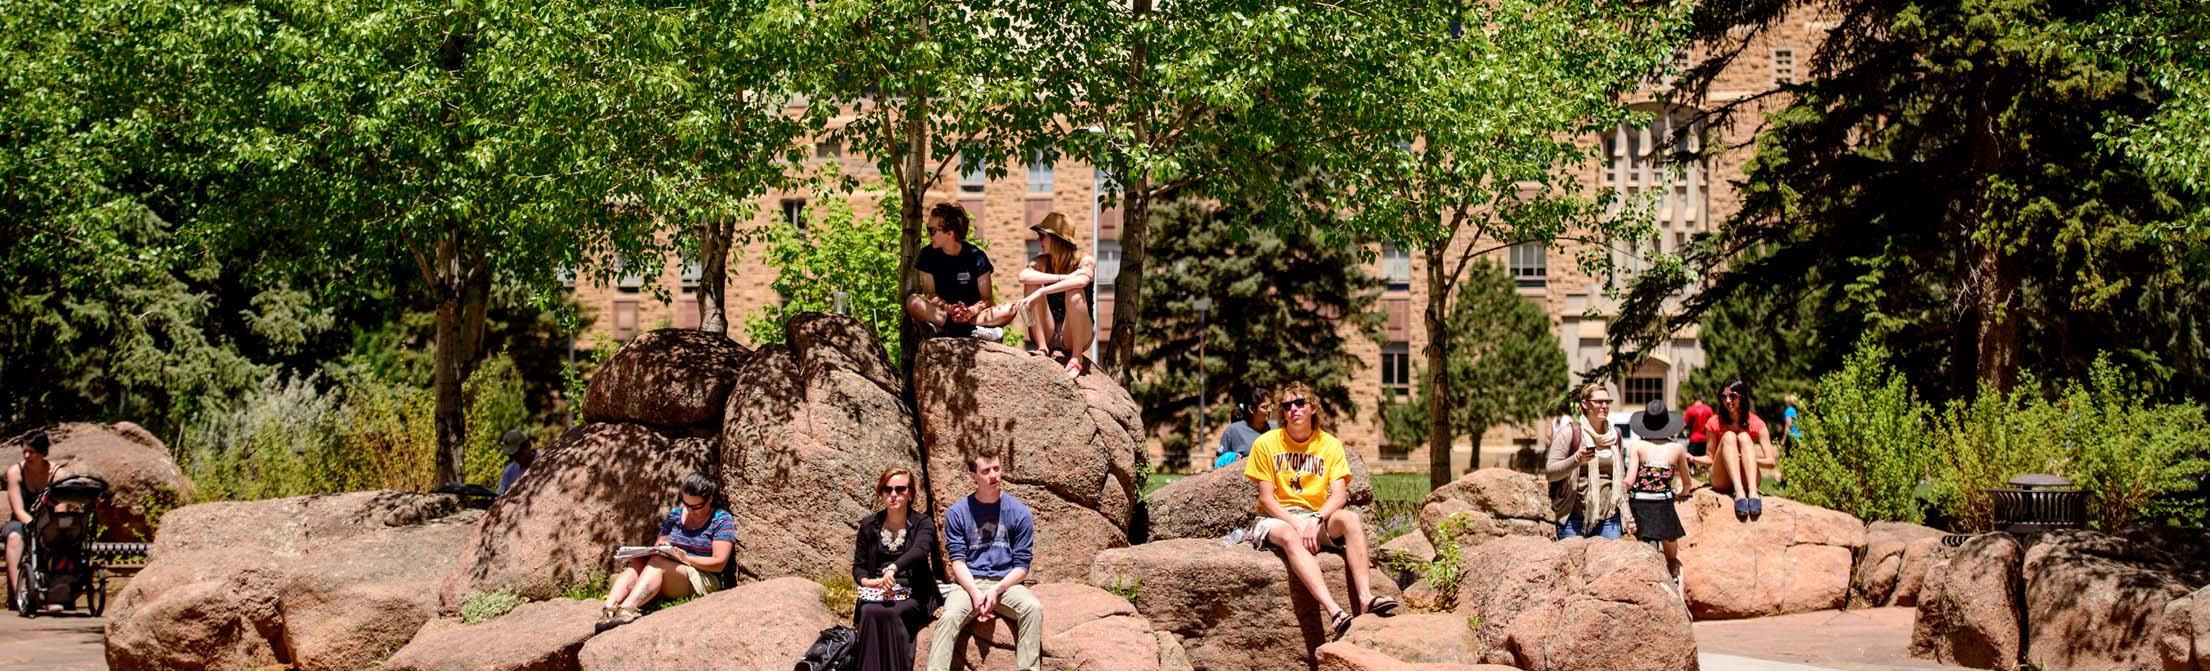 Several people relaxing on an outdoor plaza on campus in the summer time